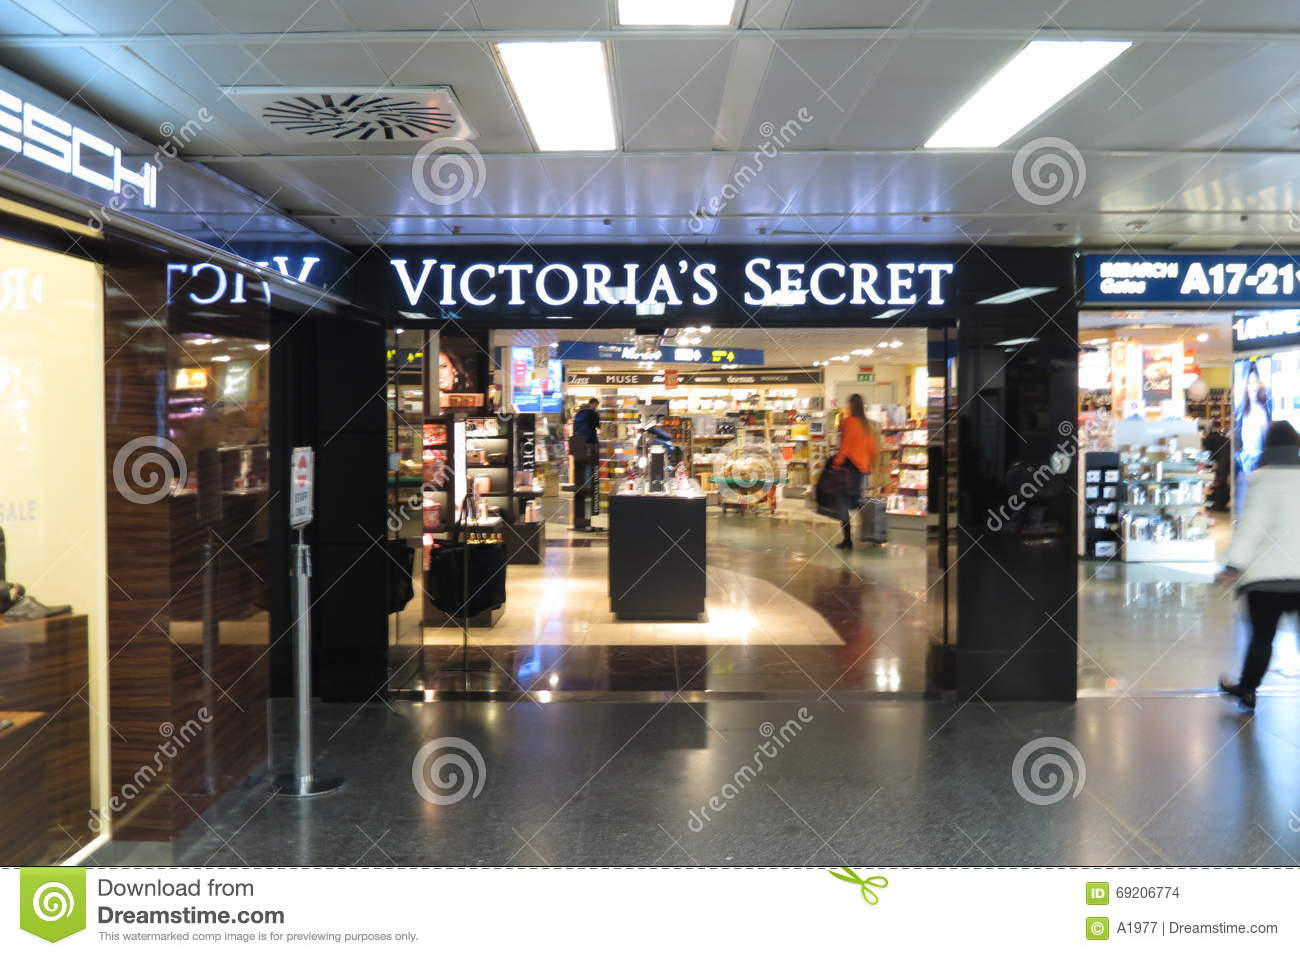 a61b654b9 LINATE, ITALY - CIRCA JANUARY 2016: Victoria's Secret store at the airport